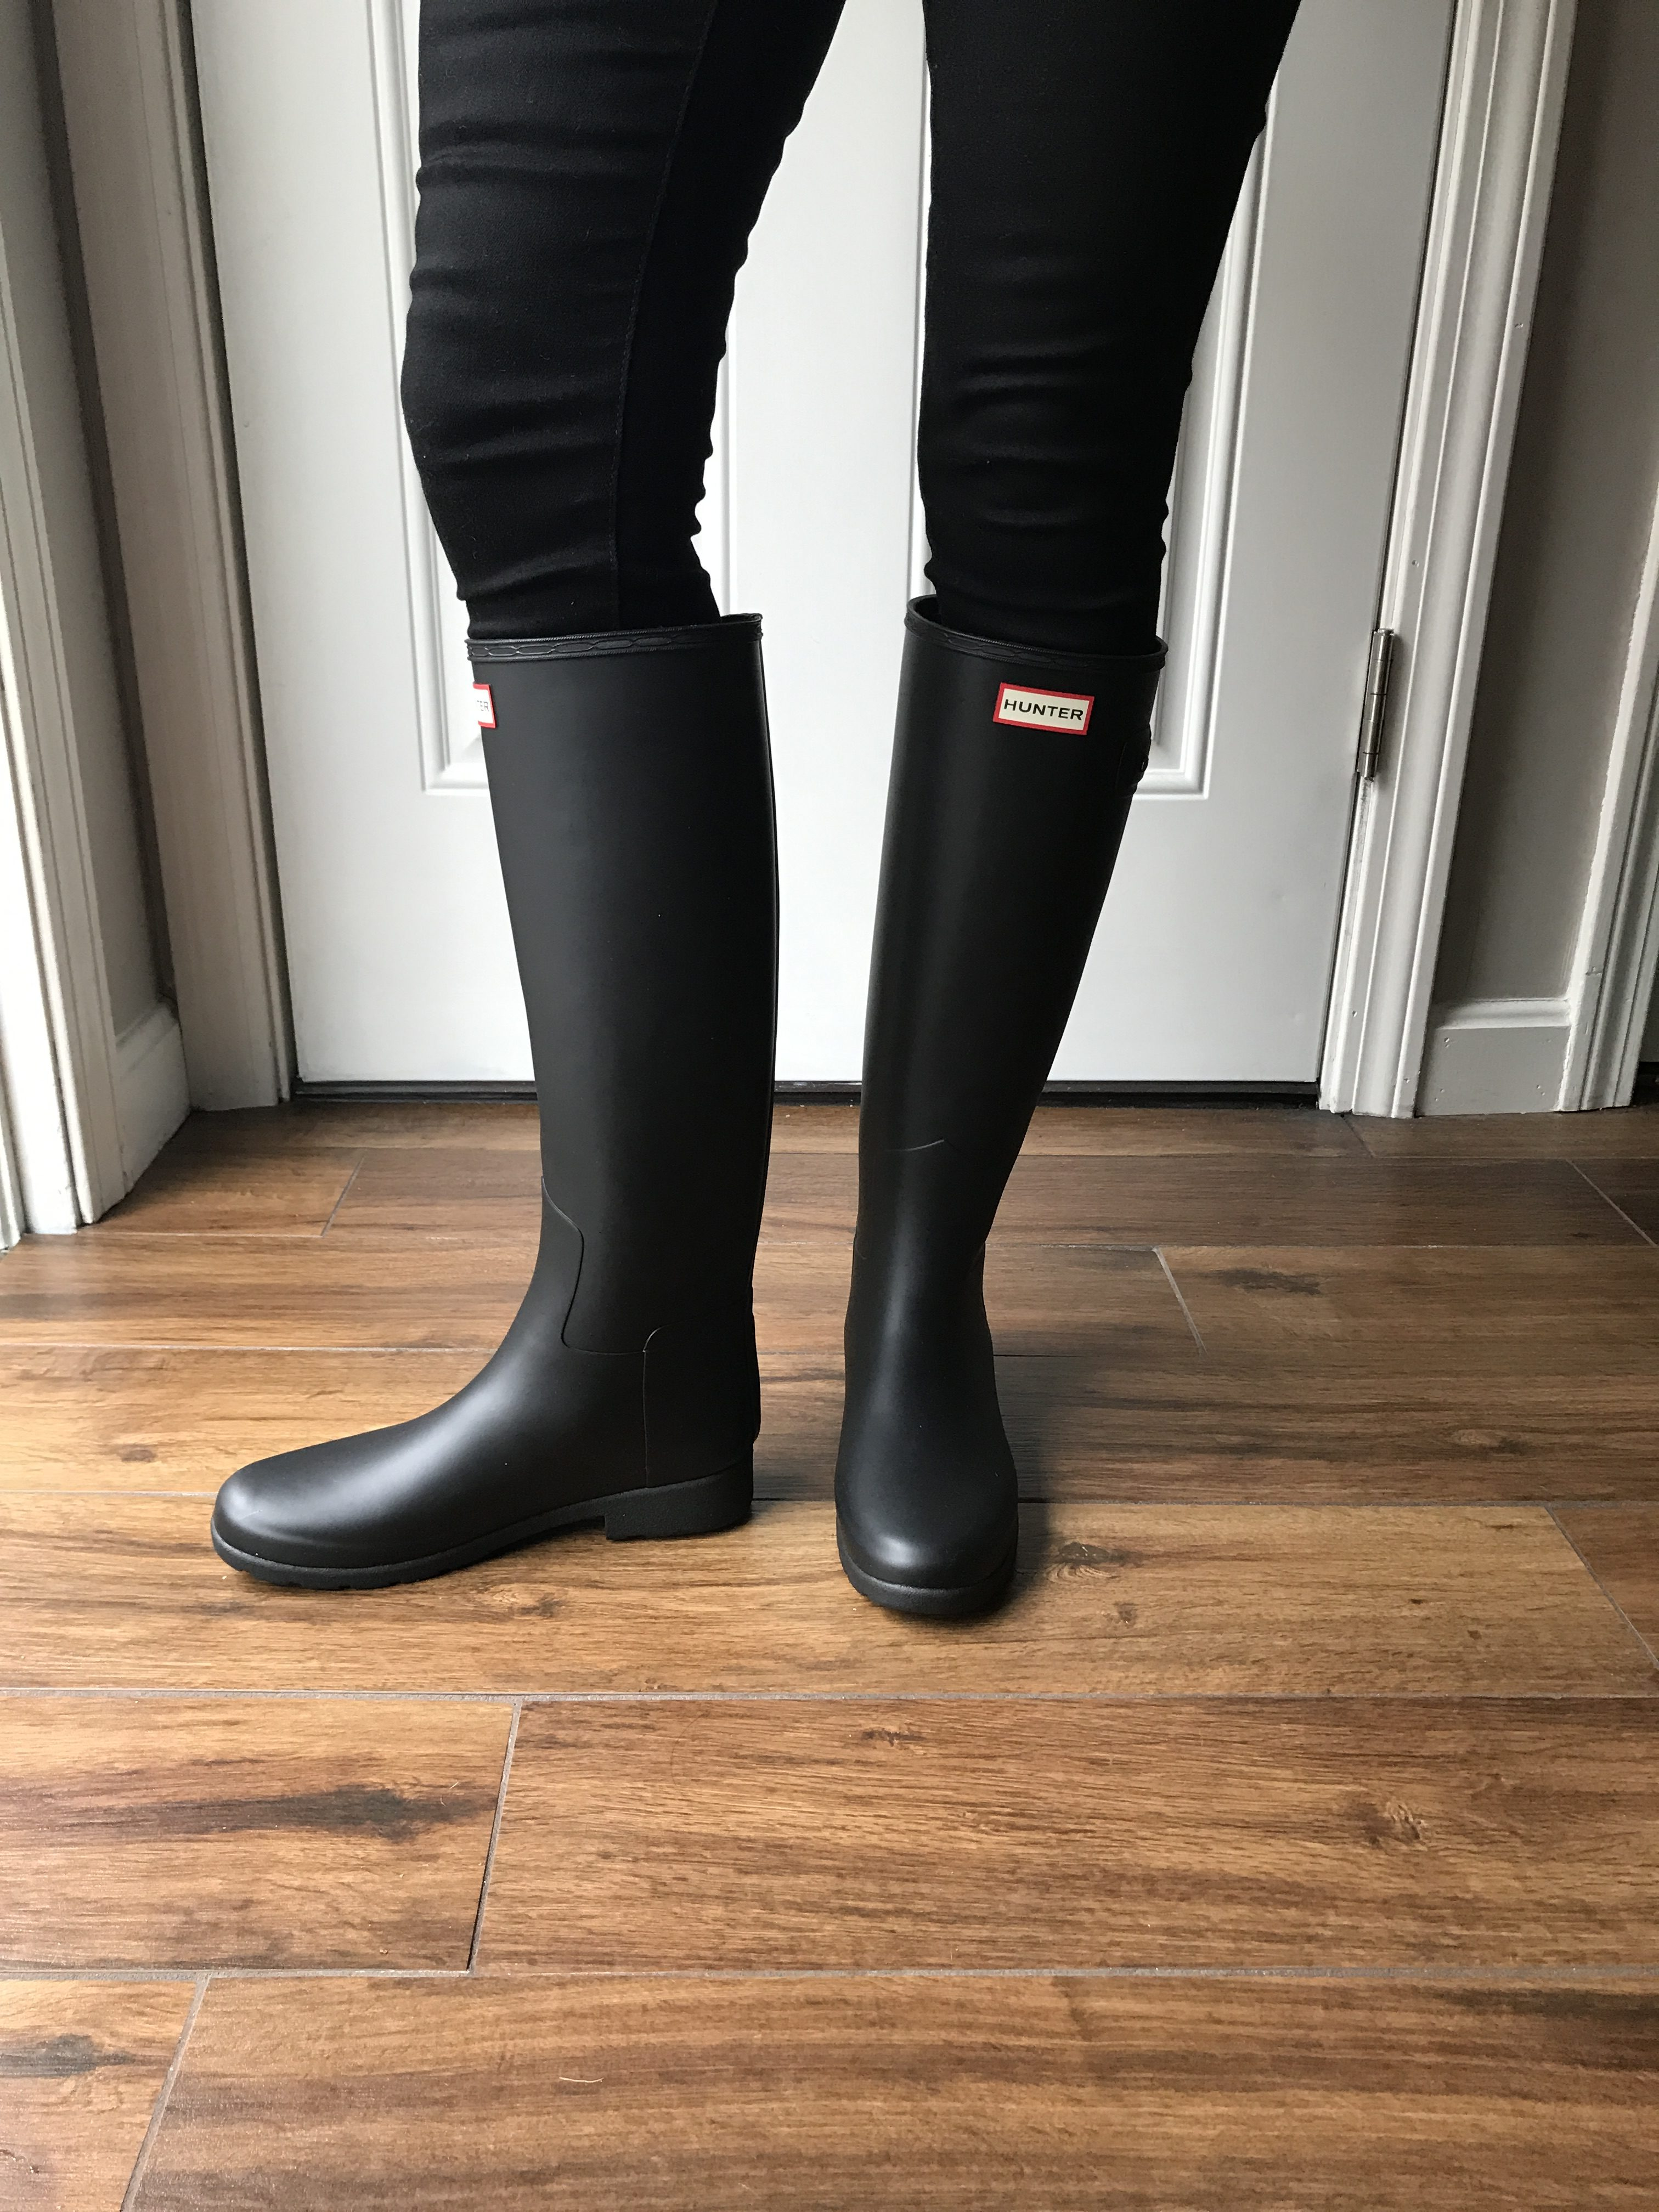 Hunter Boots * Holly Wants It All